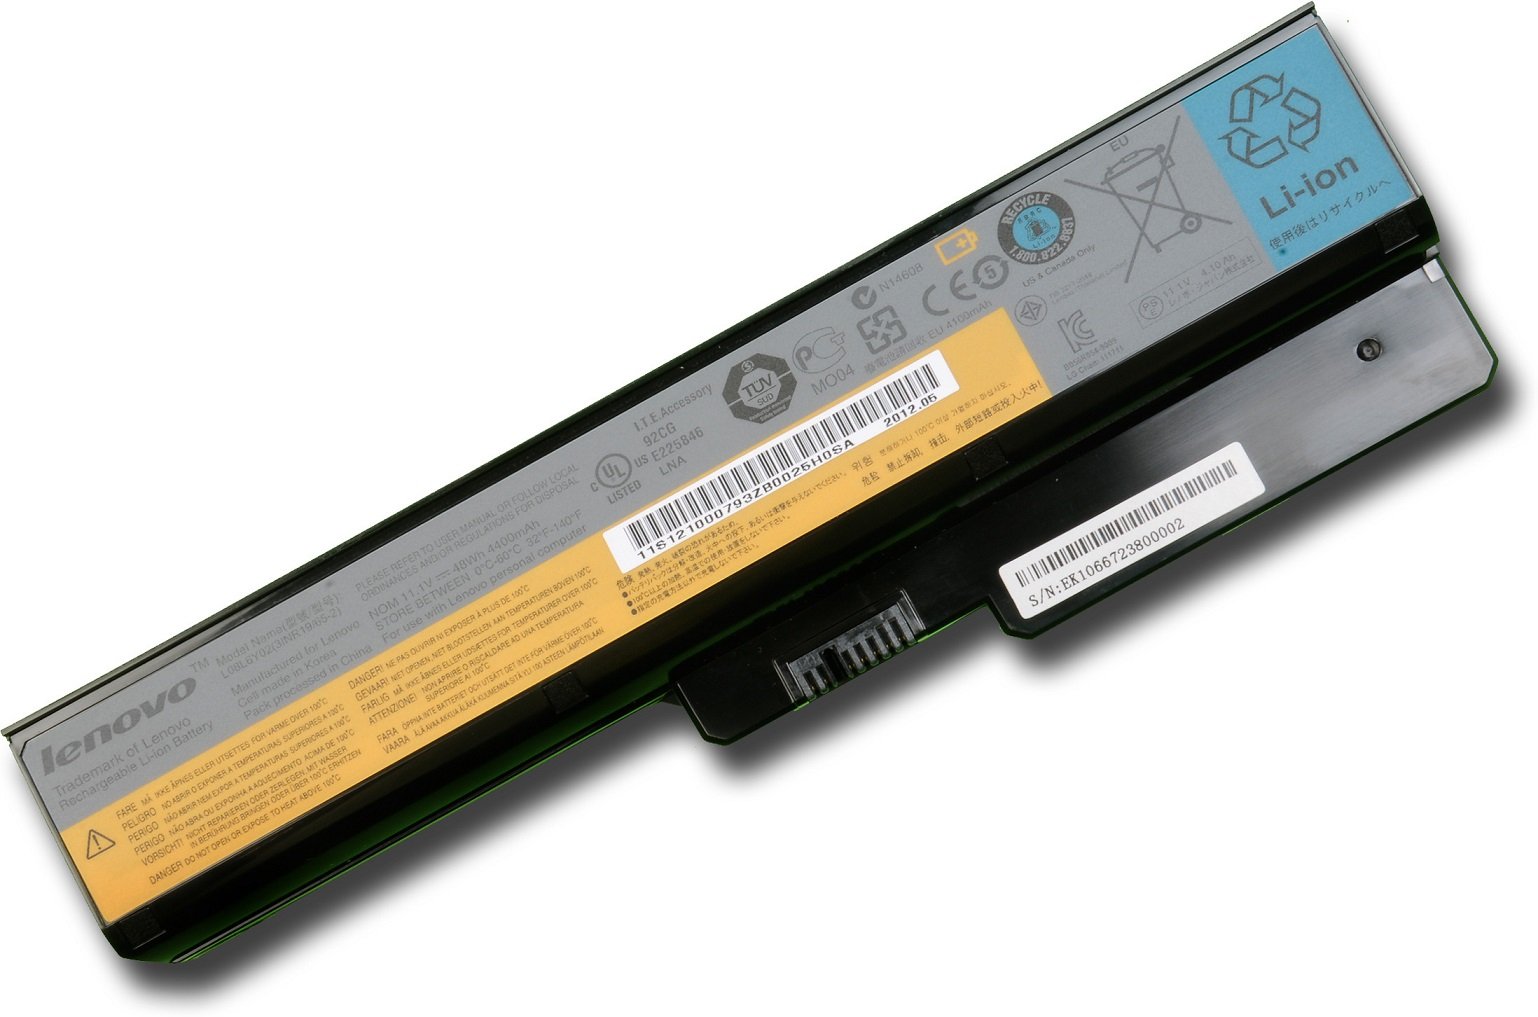 Lenovo Battery IdeaPad V460/B460/G450/G455/G550/G555 6 cell Li-Ion